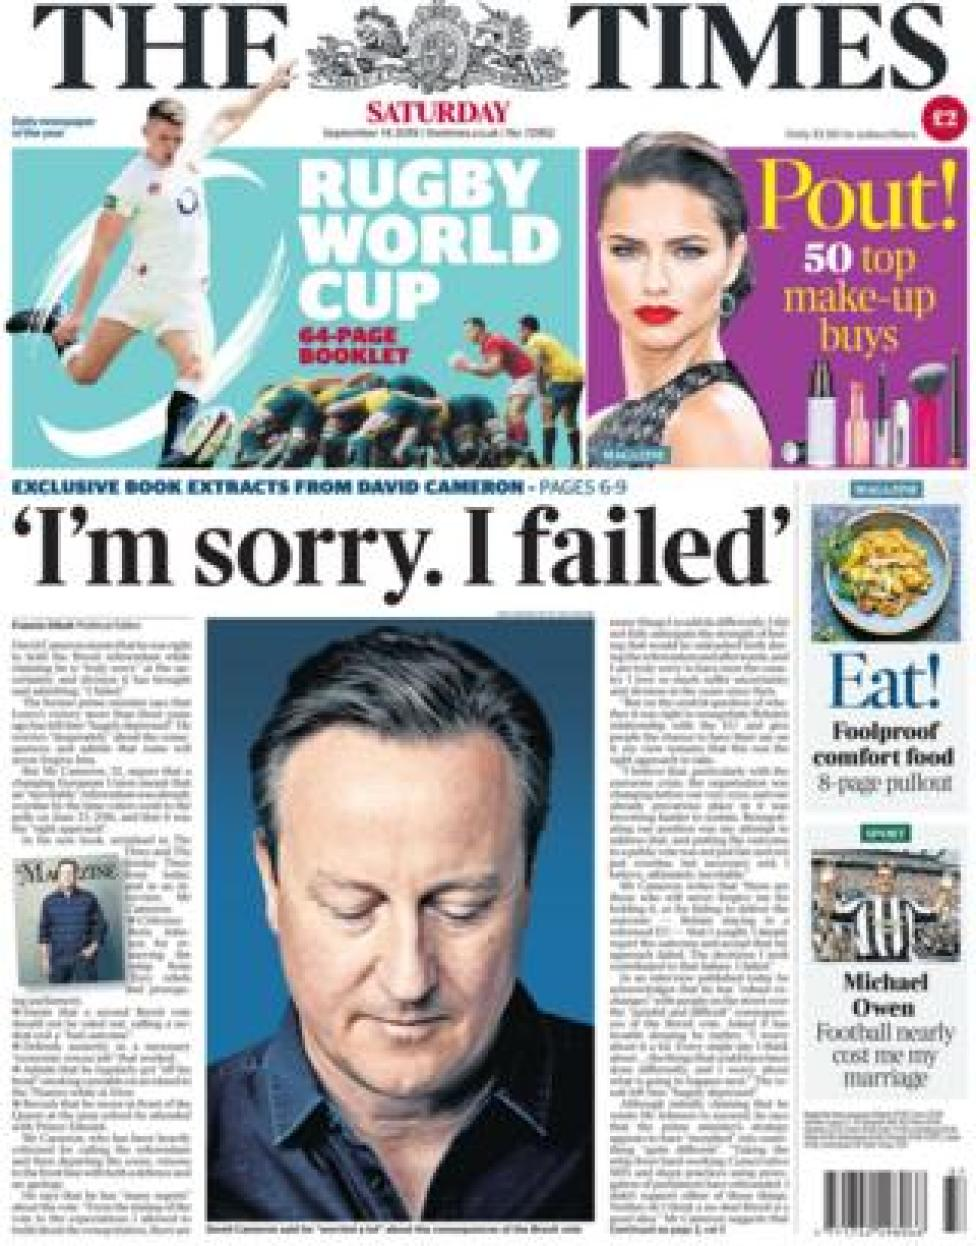 The front page of the Times on 14 September 2019